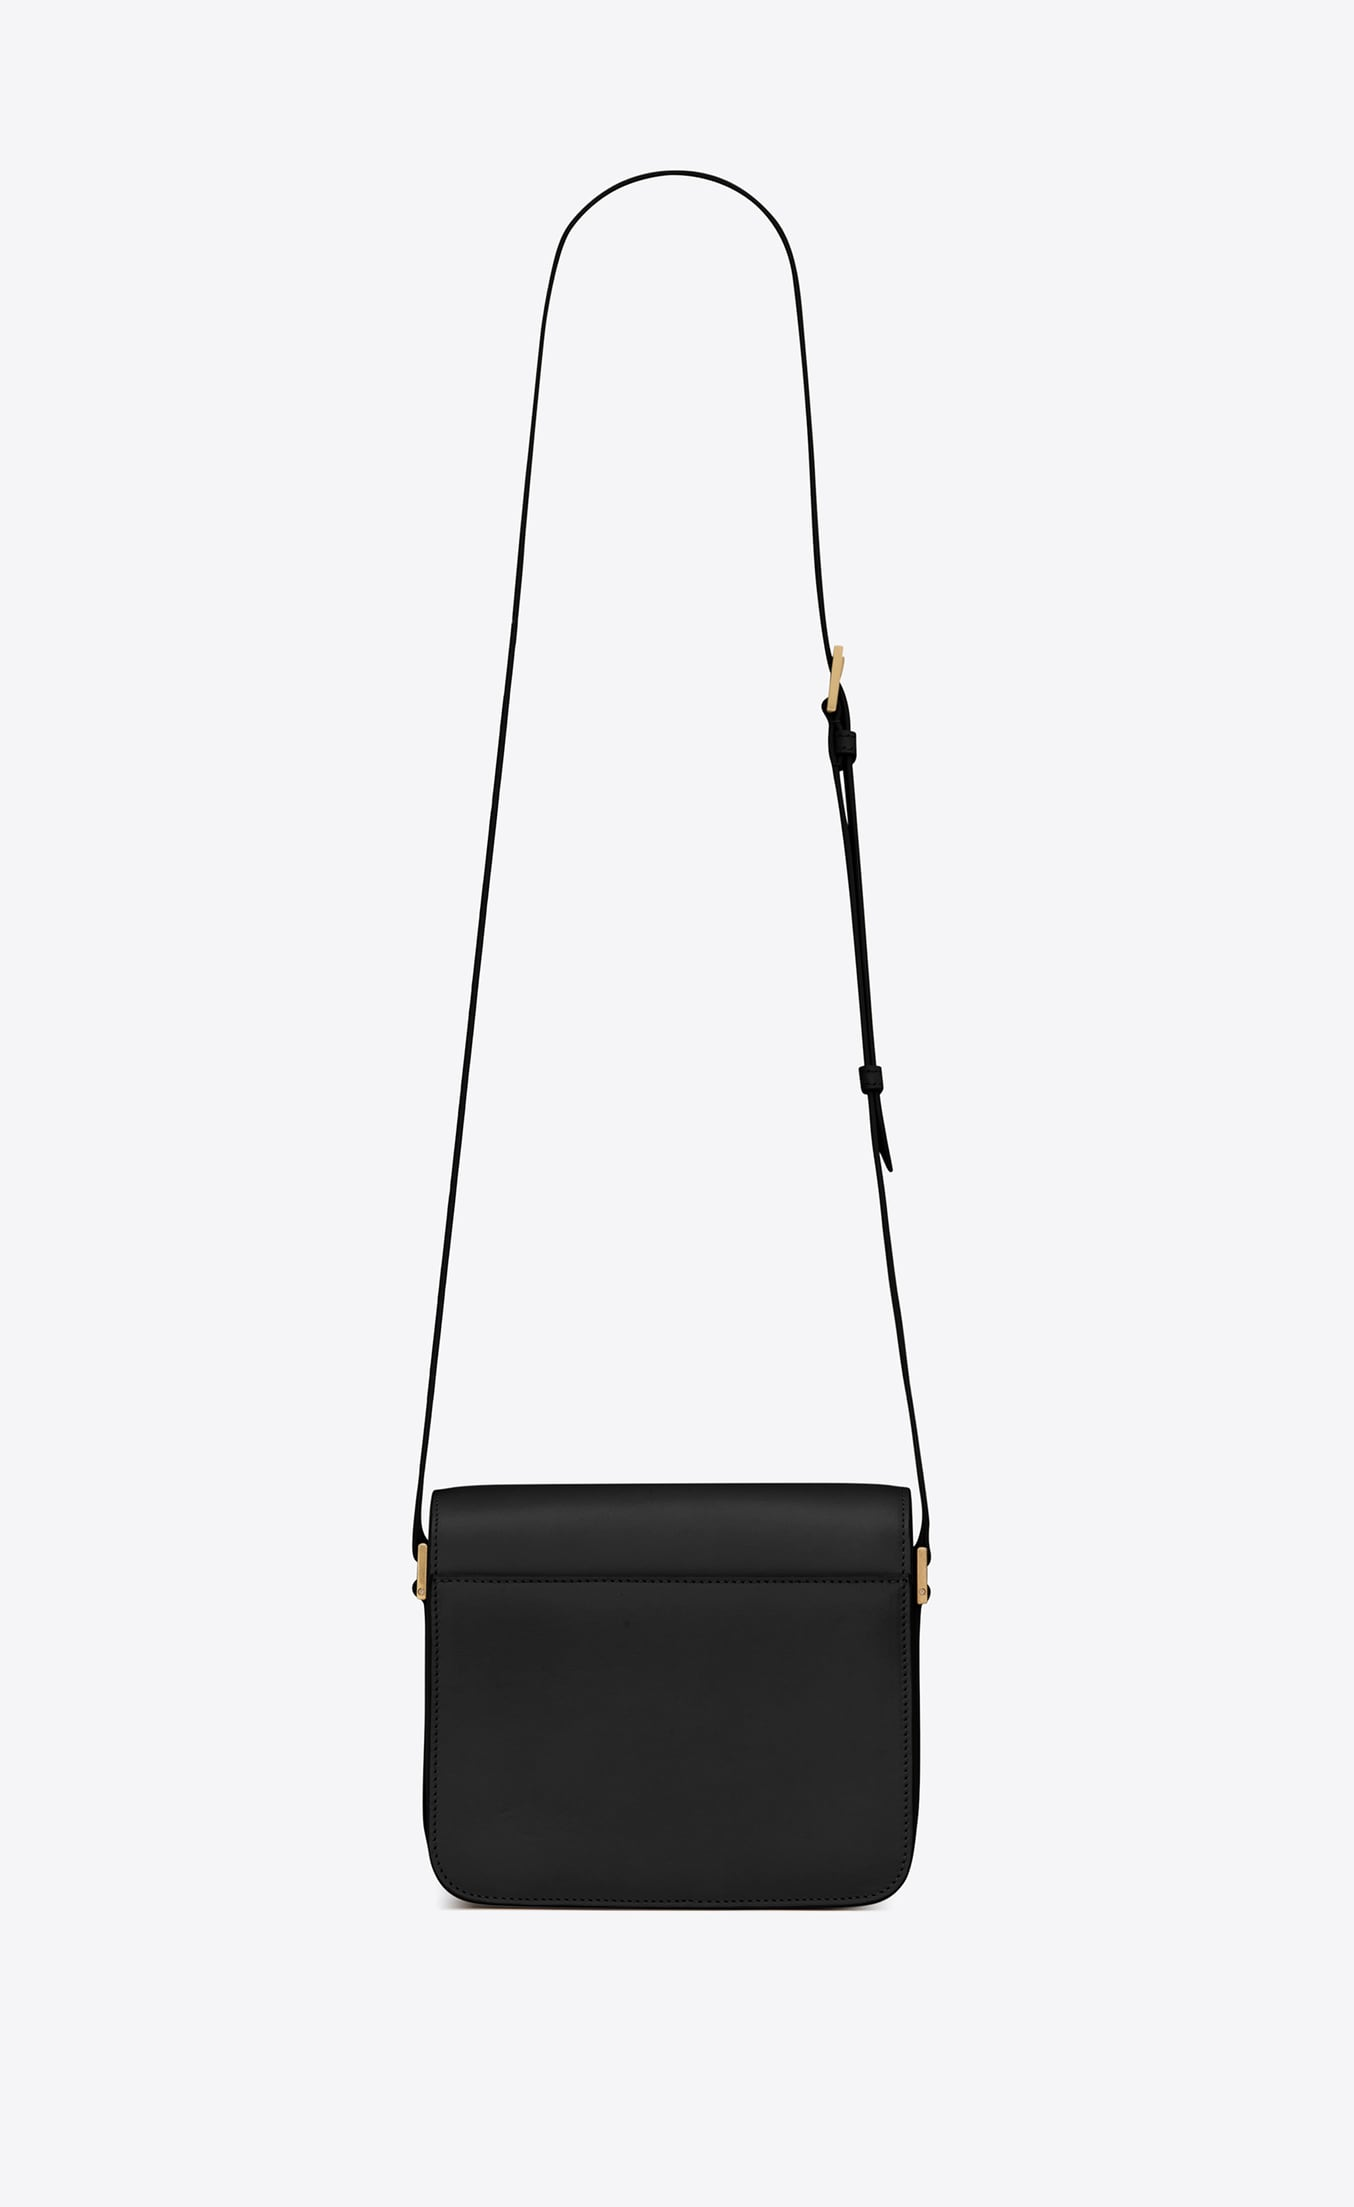 LE 61 SMALL SADDLE BAG